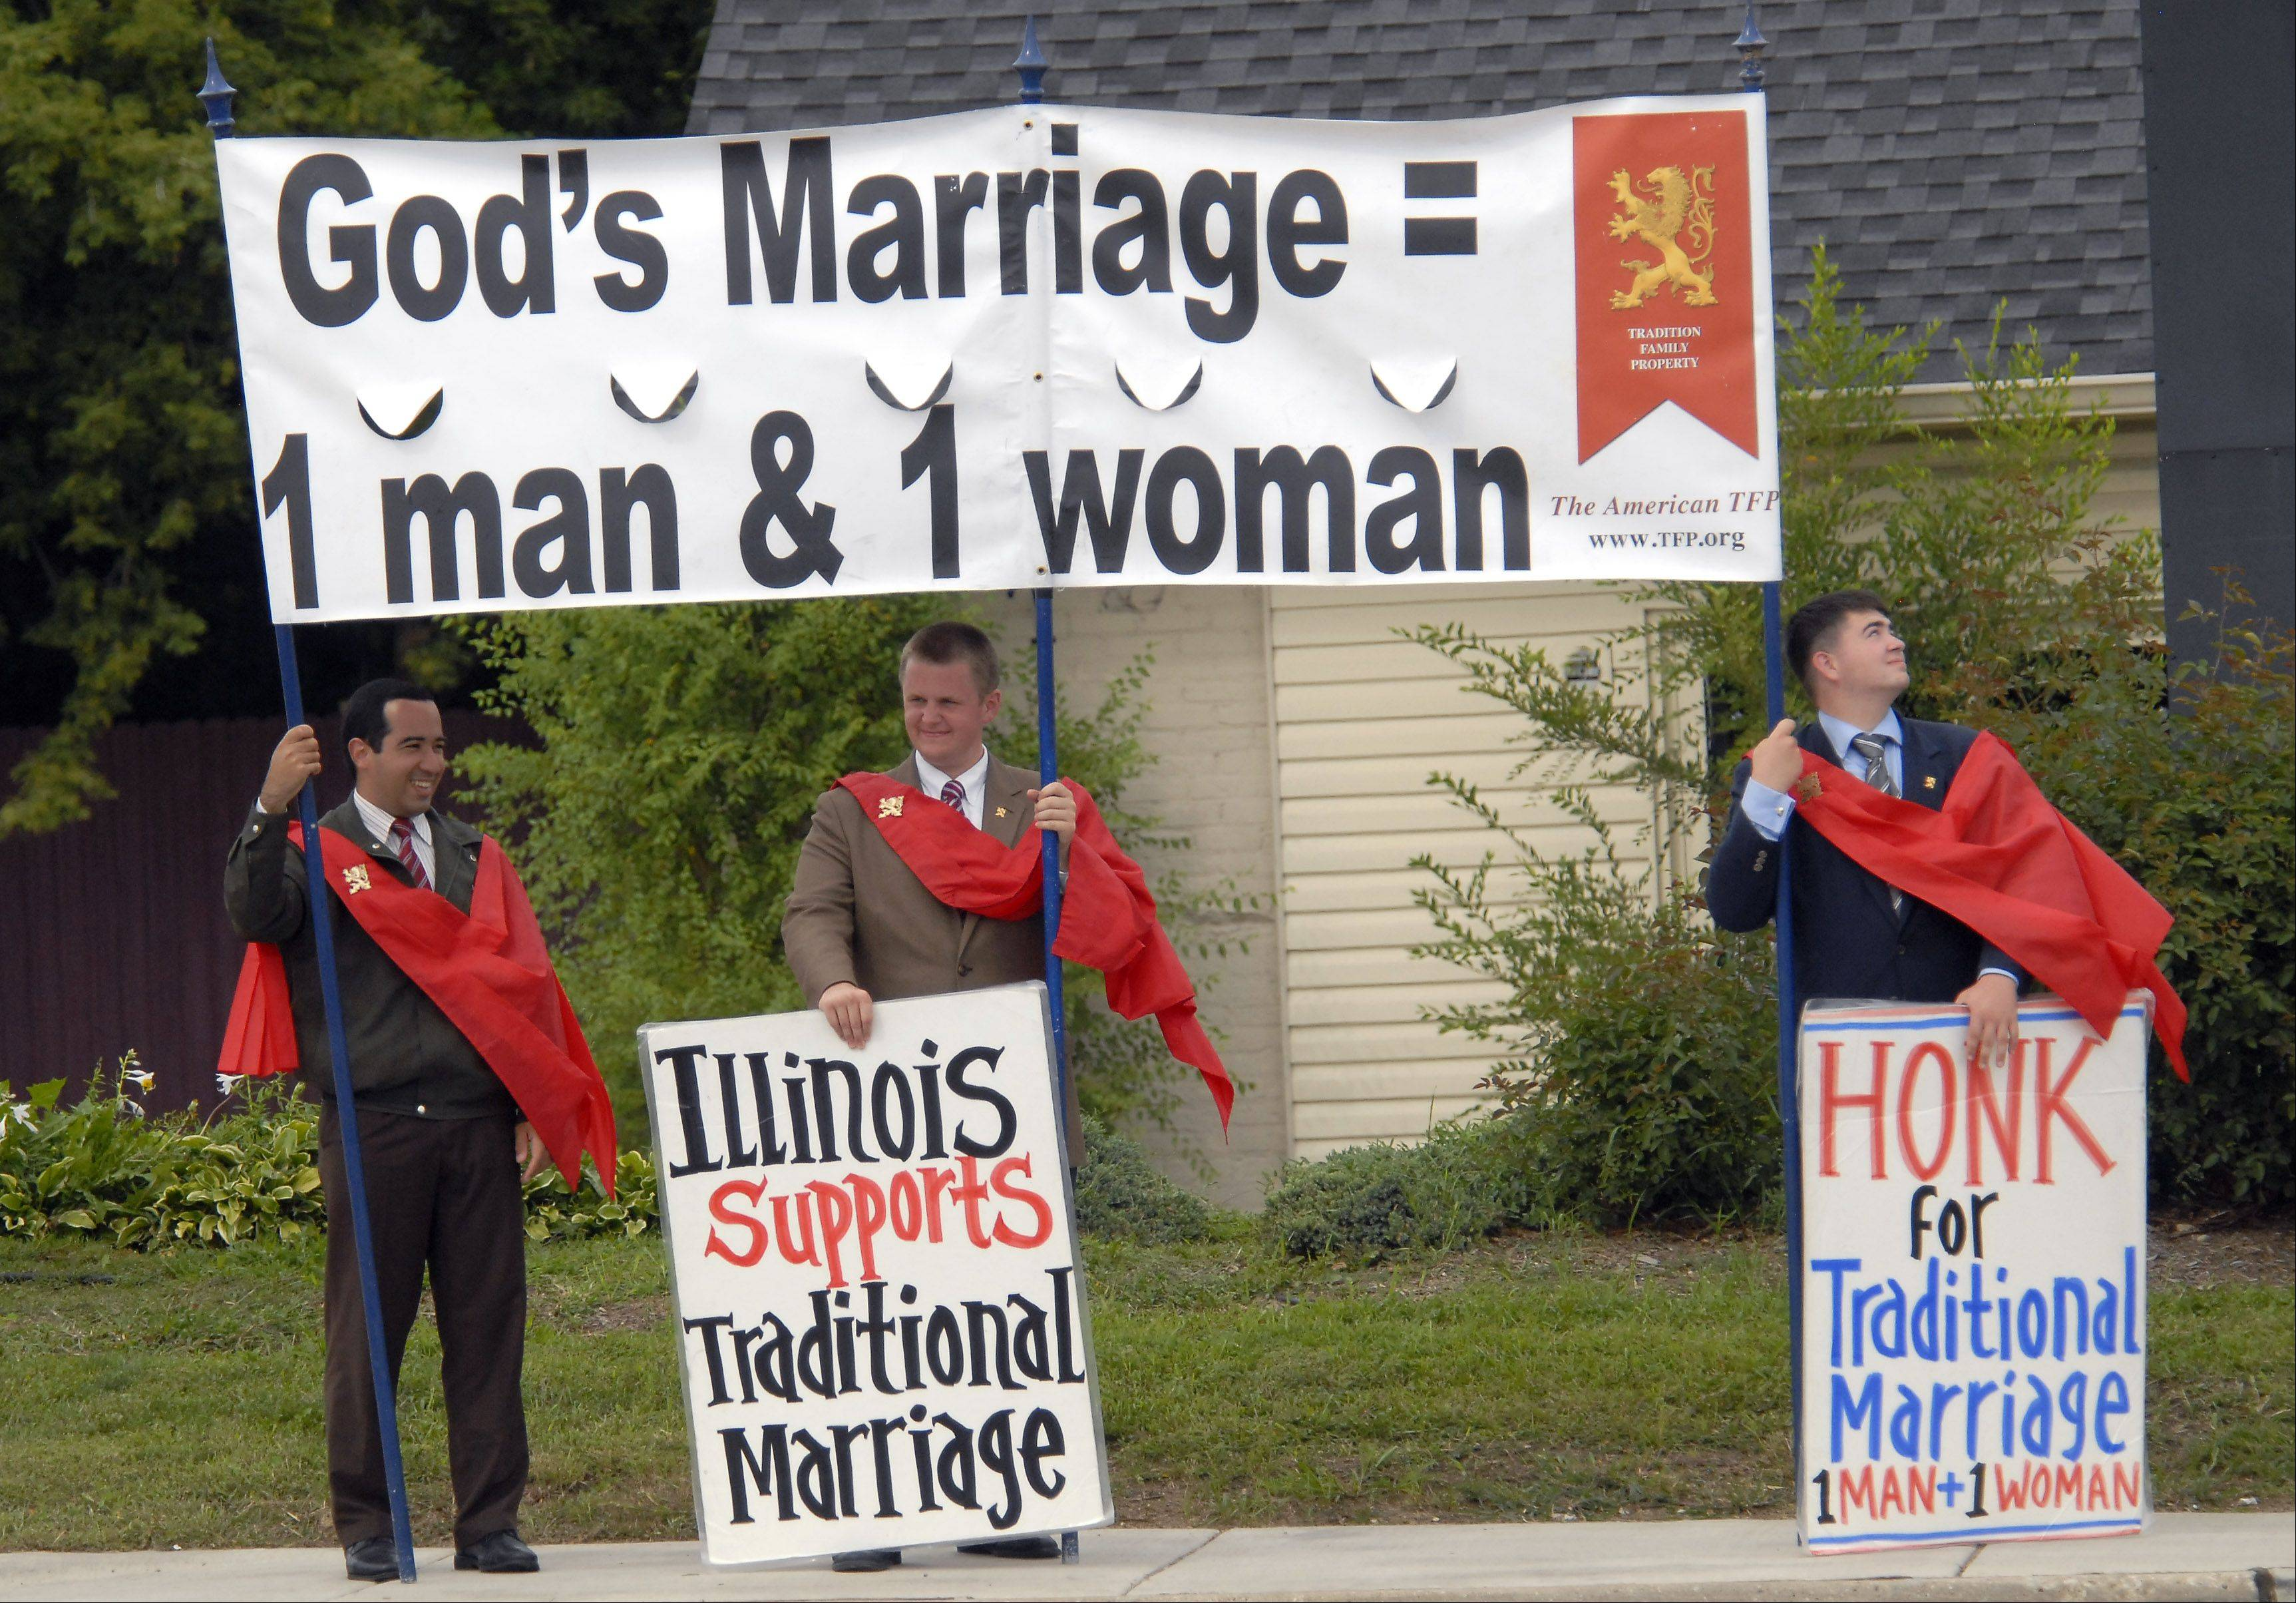 Ten members of the American Society for the Defense of Tradition, Family, and Property drove 800 miles from York, Pa., to stage protests against gay marriage in Illinois. Friday afternoon they were at the intersection of Rand and Dundee roads in Palatine.